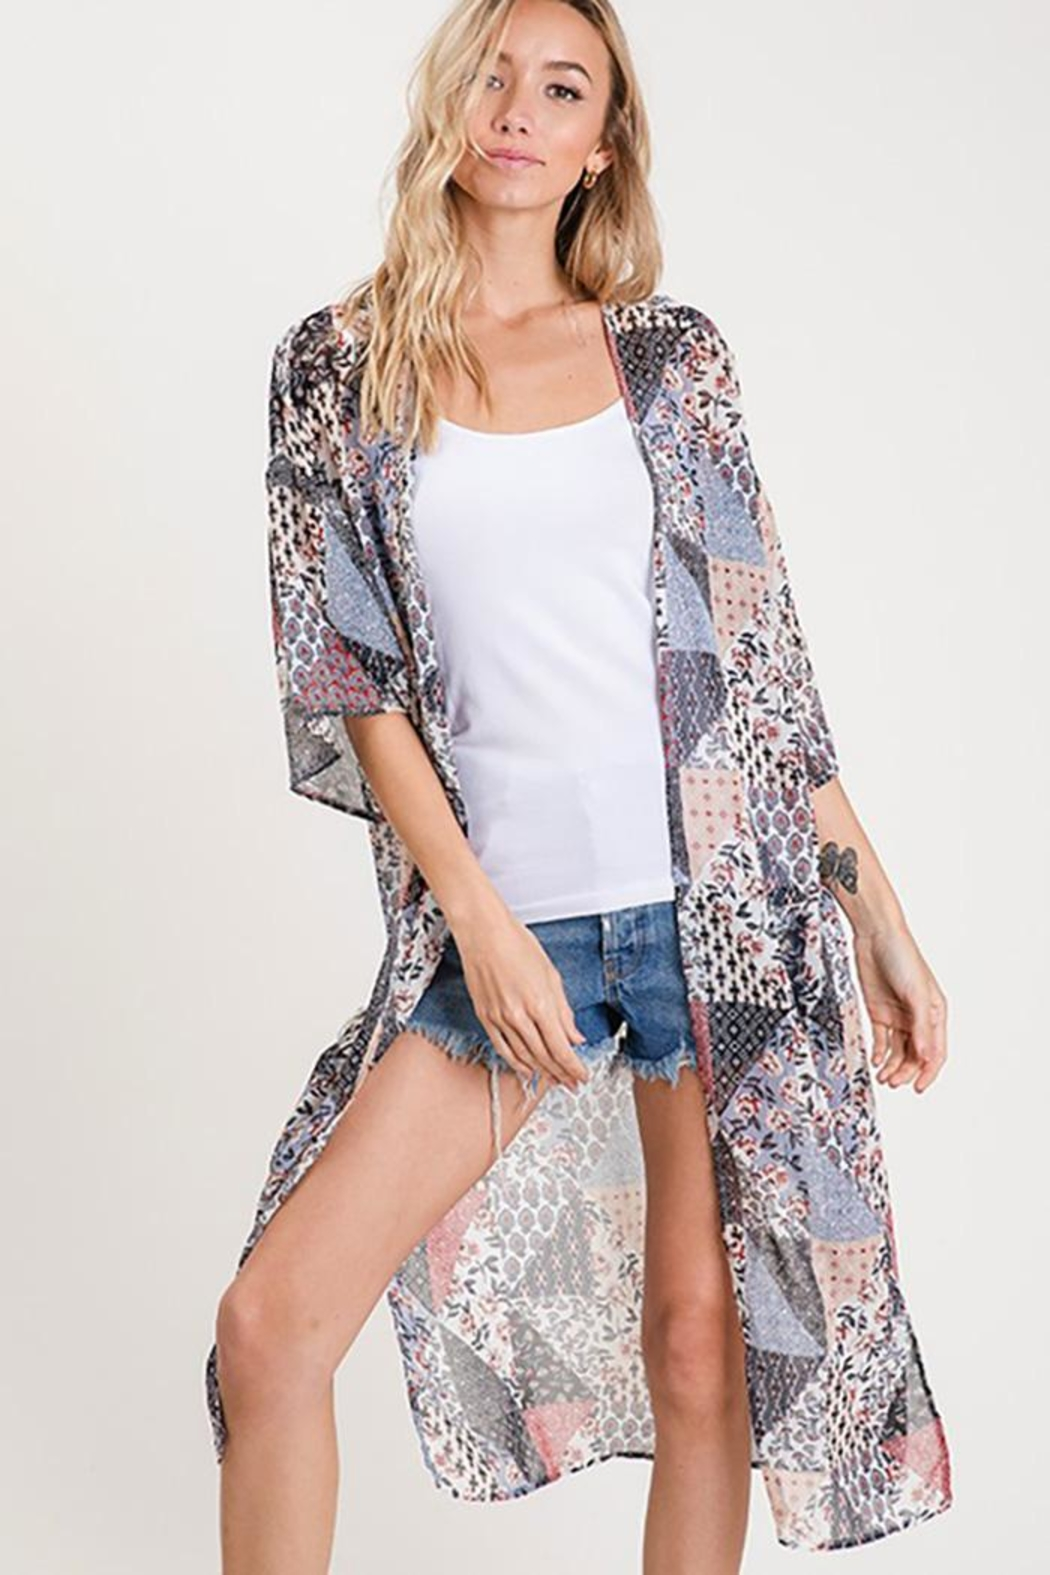 CY Fashion Flower Front Open Chiffon Cardigan - Main Image